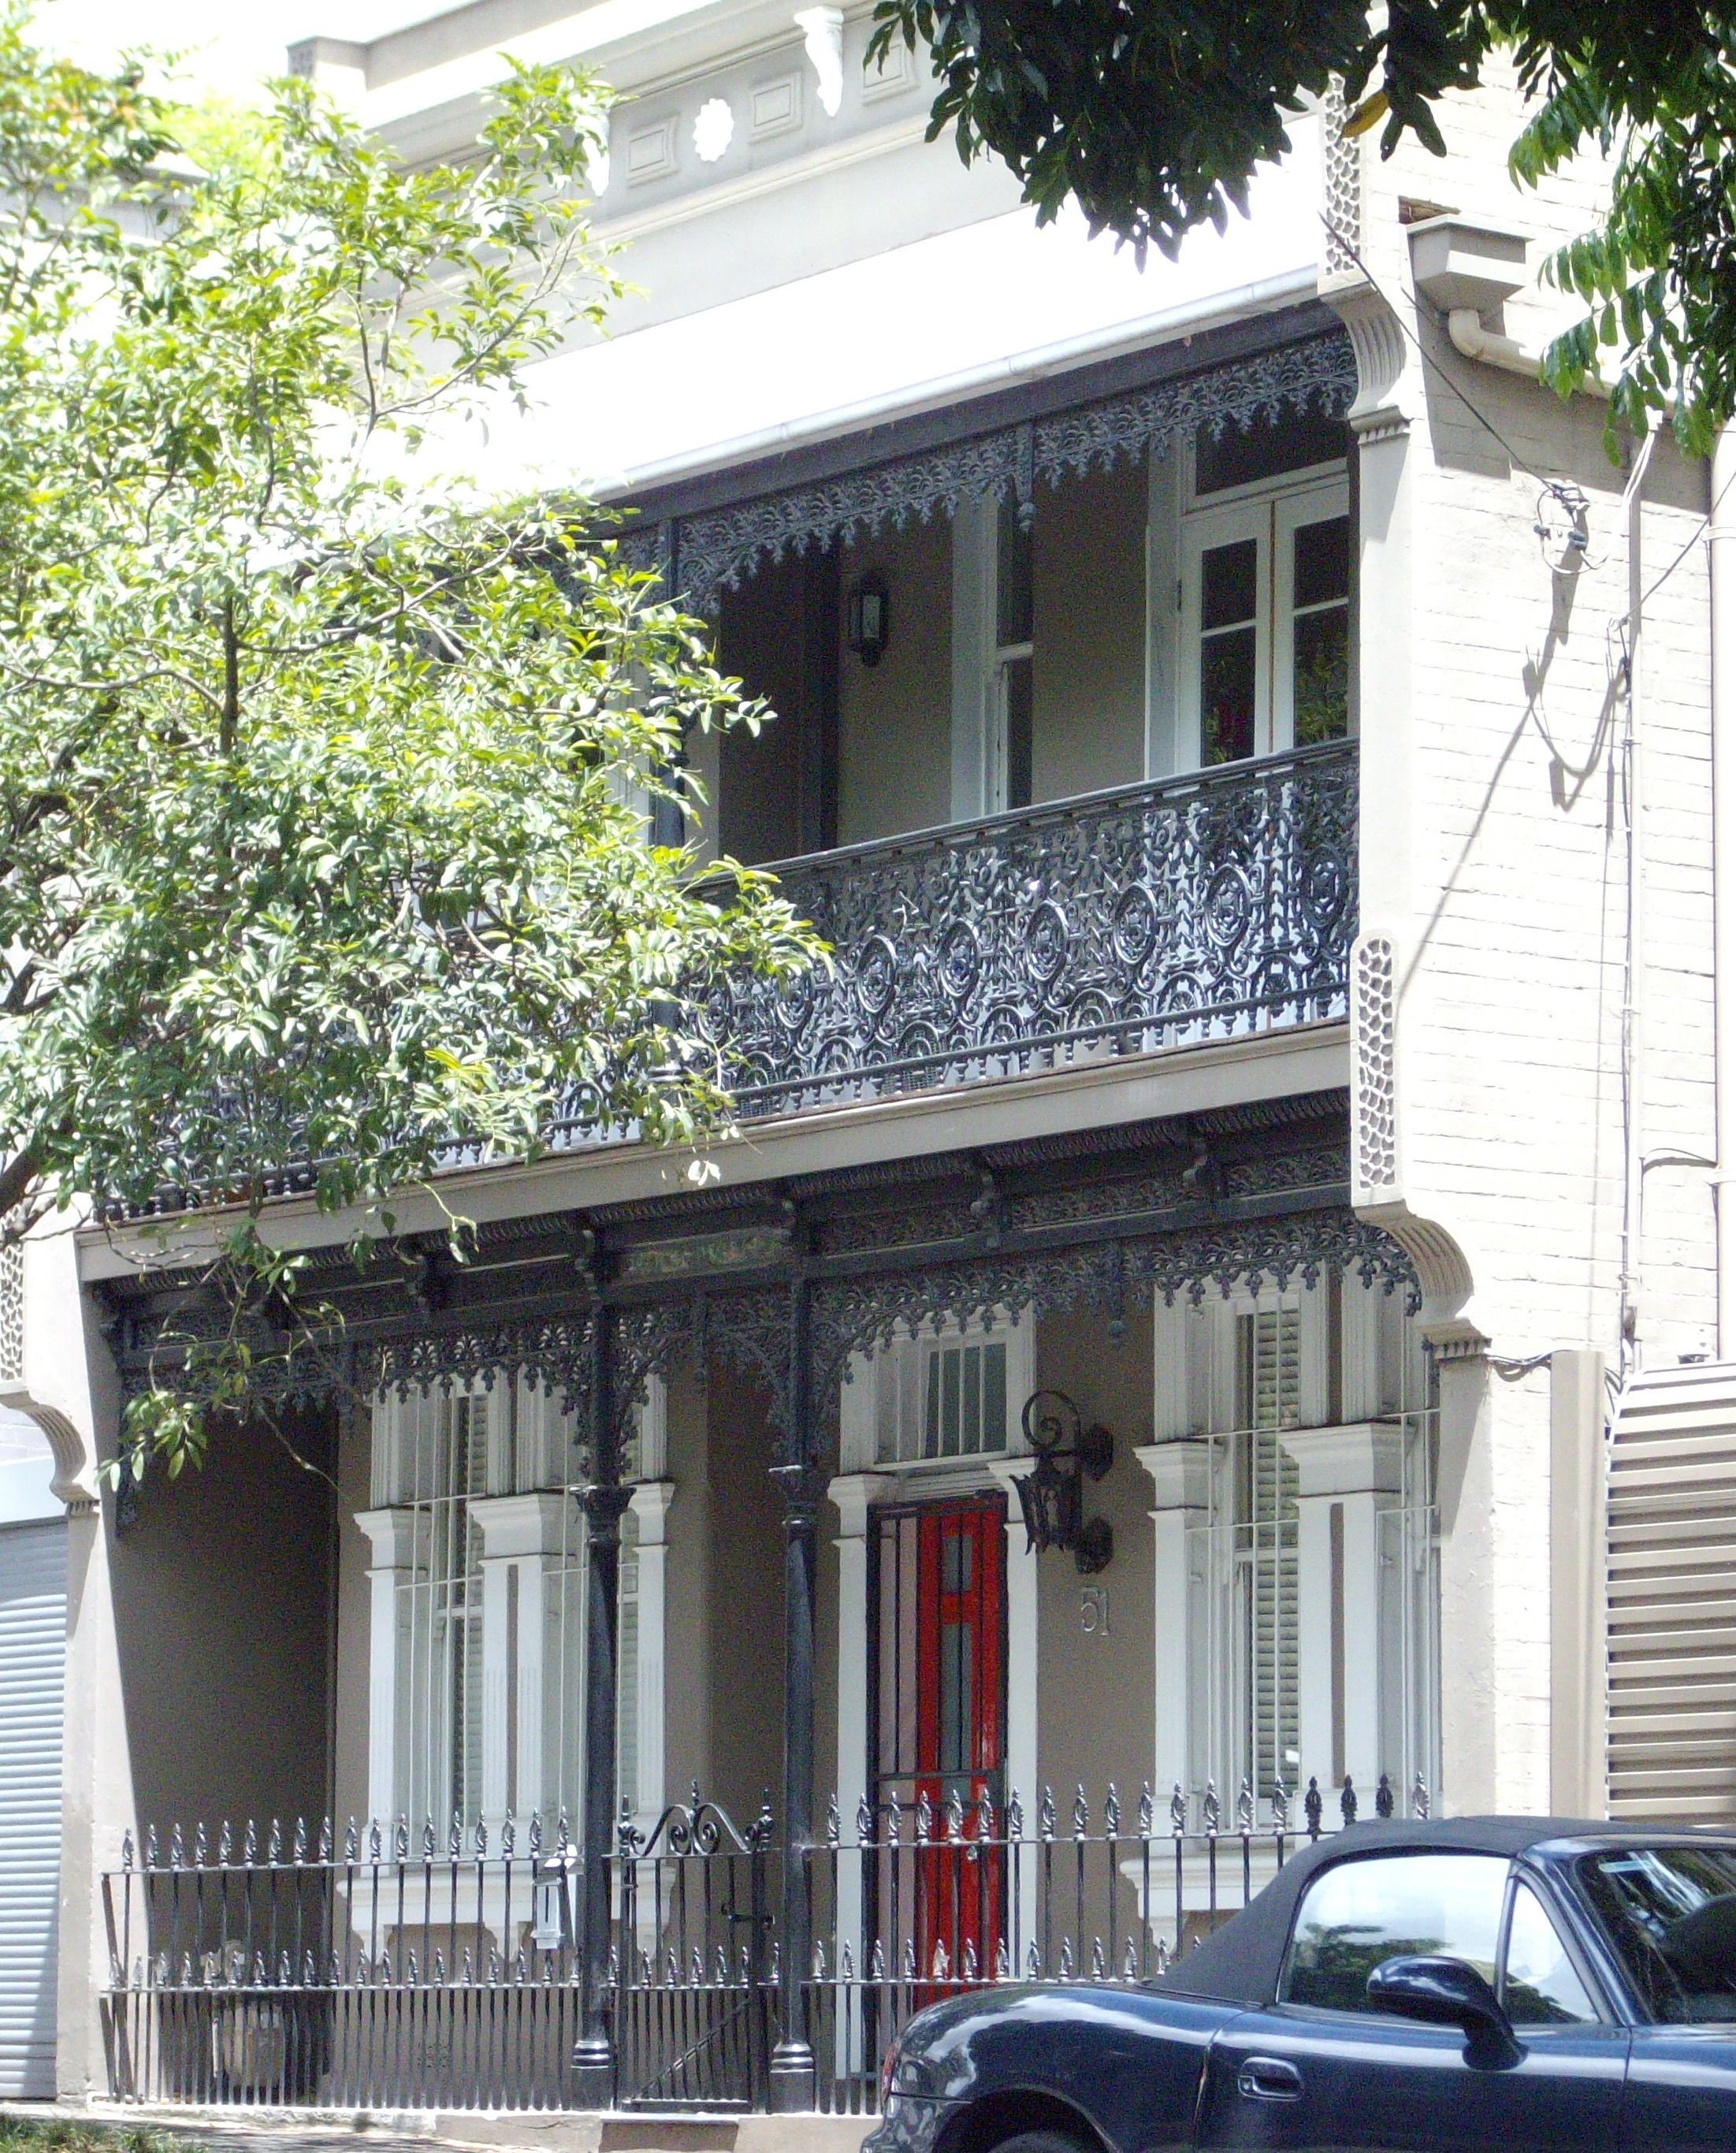 Best Exterior Design App: To Renovate A Victorian Terrace House